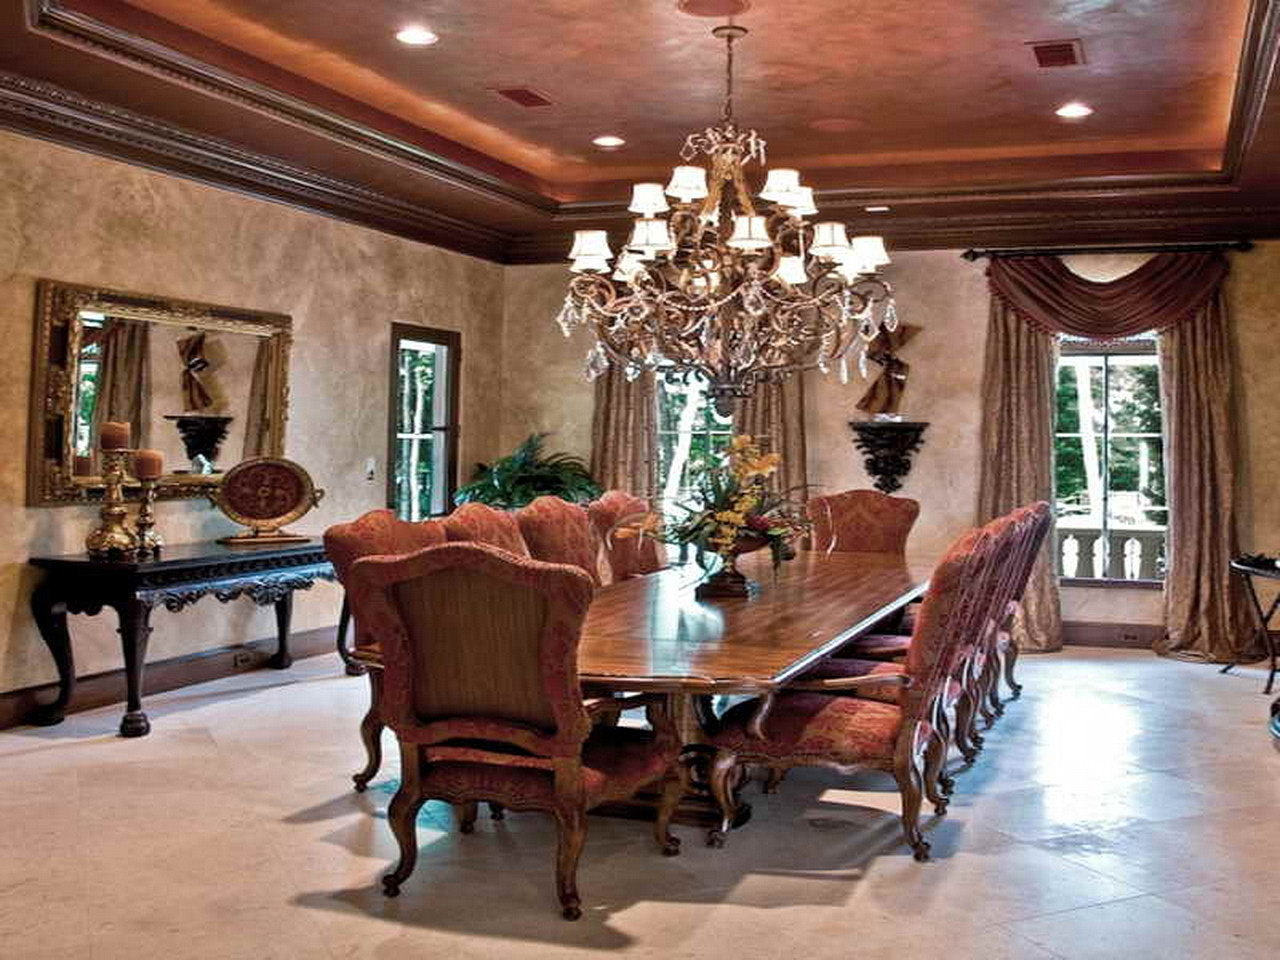 79 Handpicked Dining Room Ideas For Sweet Home Interior Design Inspirations